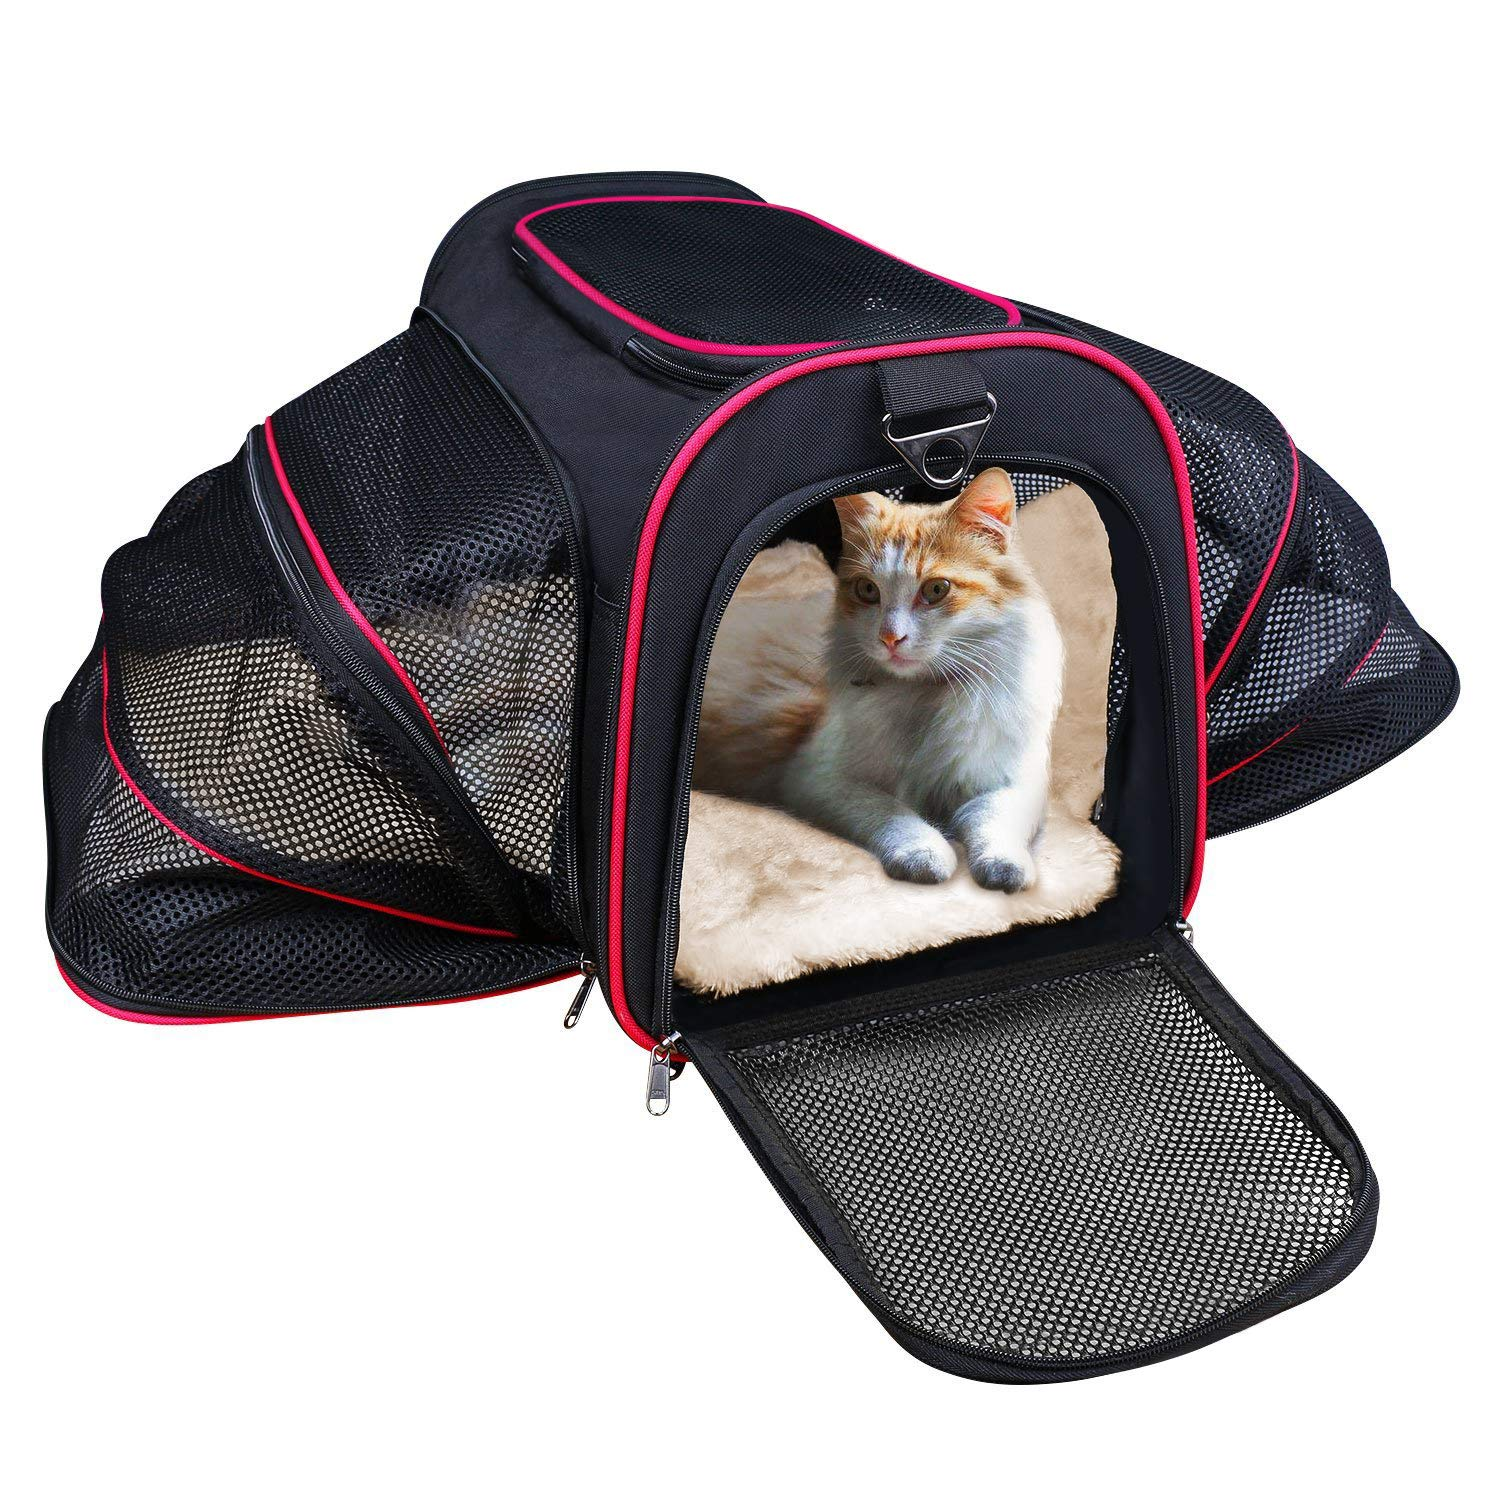 LOGROTATE Cat Carrier, Airline Approved Portable Airplane Pet Dog Carrier Soft Double Sided Expandable Travel Carriers Bag Purse for Dogs Cats Kittens Puppies & Small and Medium Animals